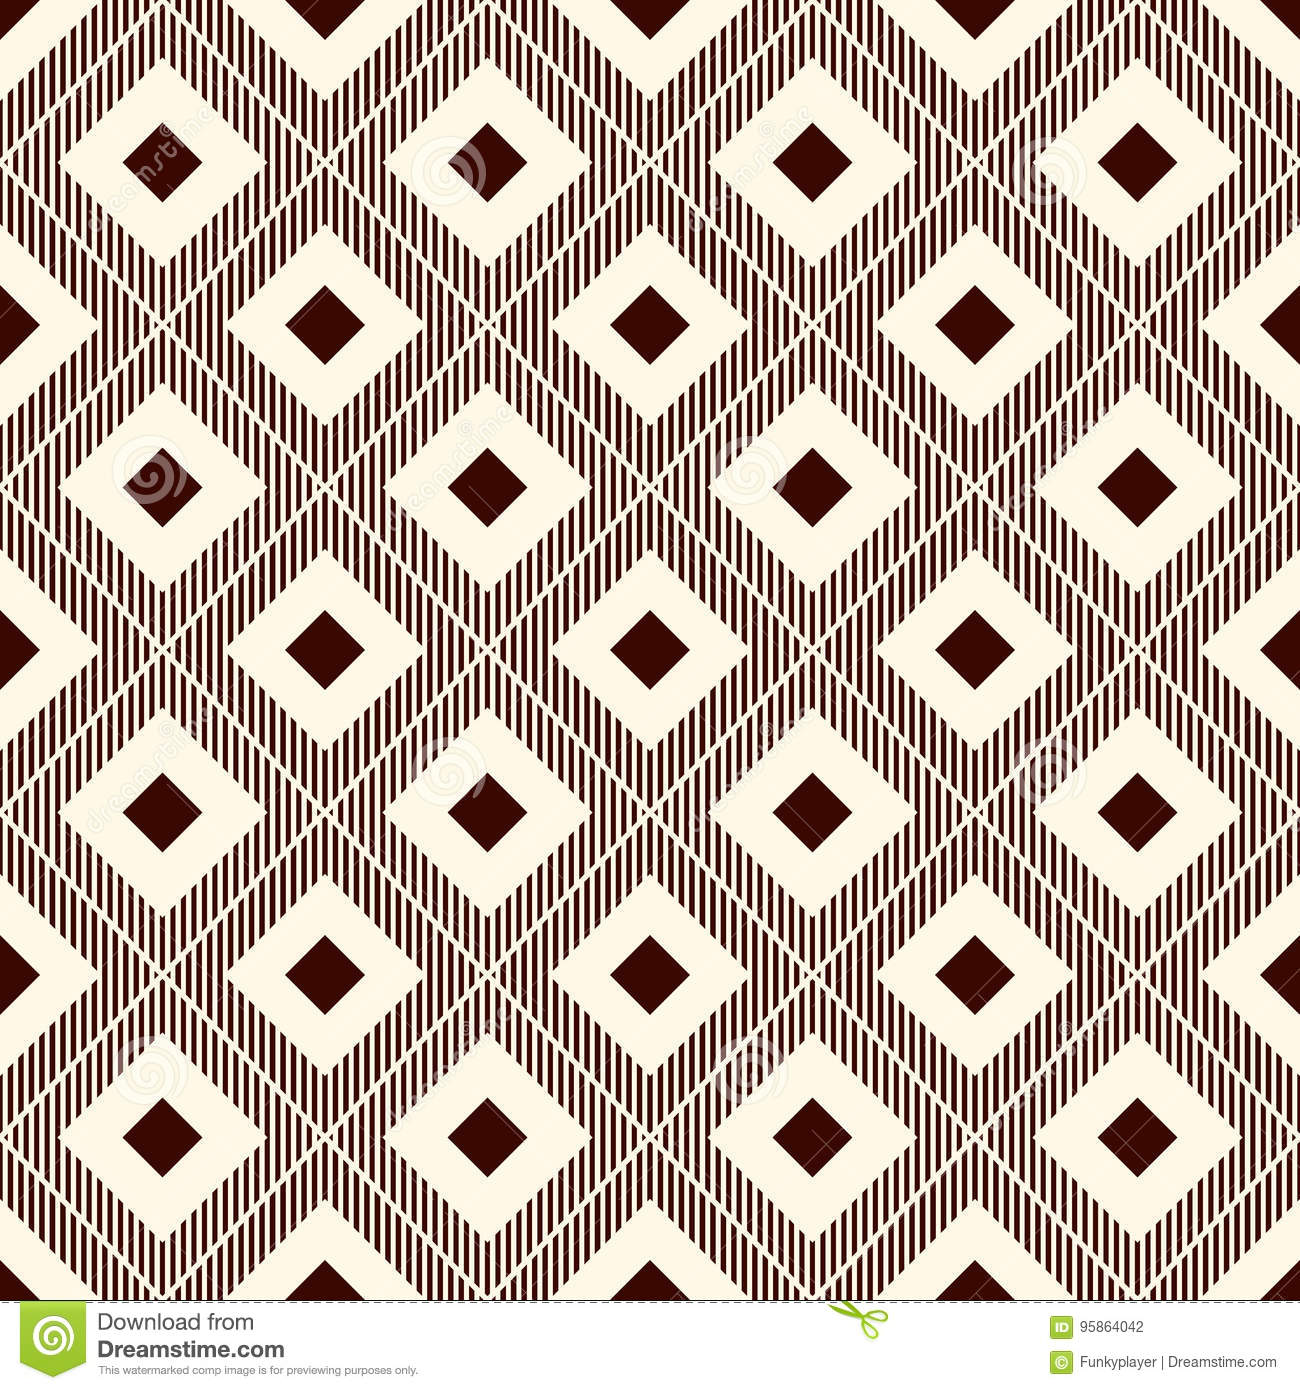 Repeated Brown Diamonds And Hatch Lines Ikat Wallpaper Seamless Surface Pattern With Native Design